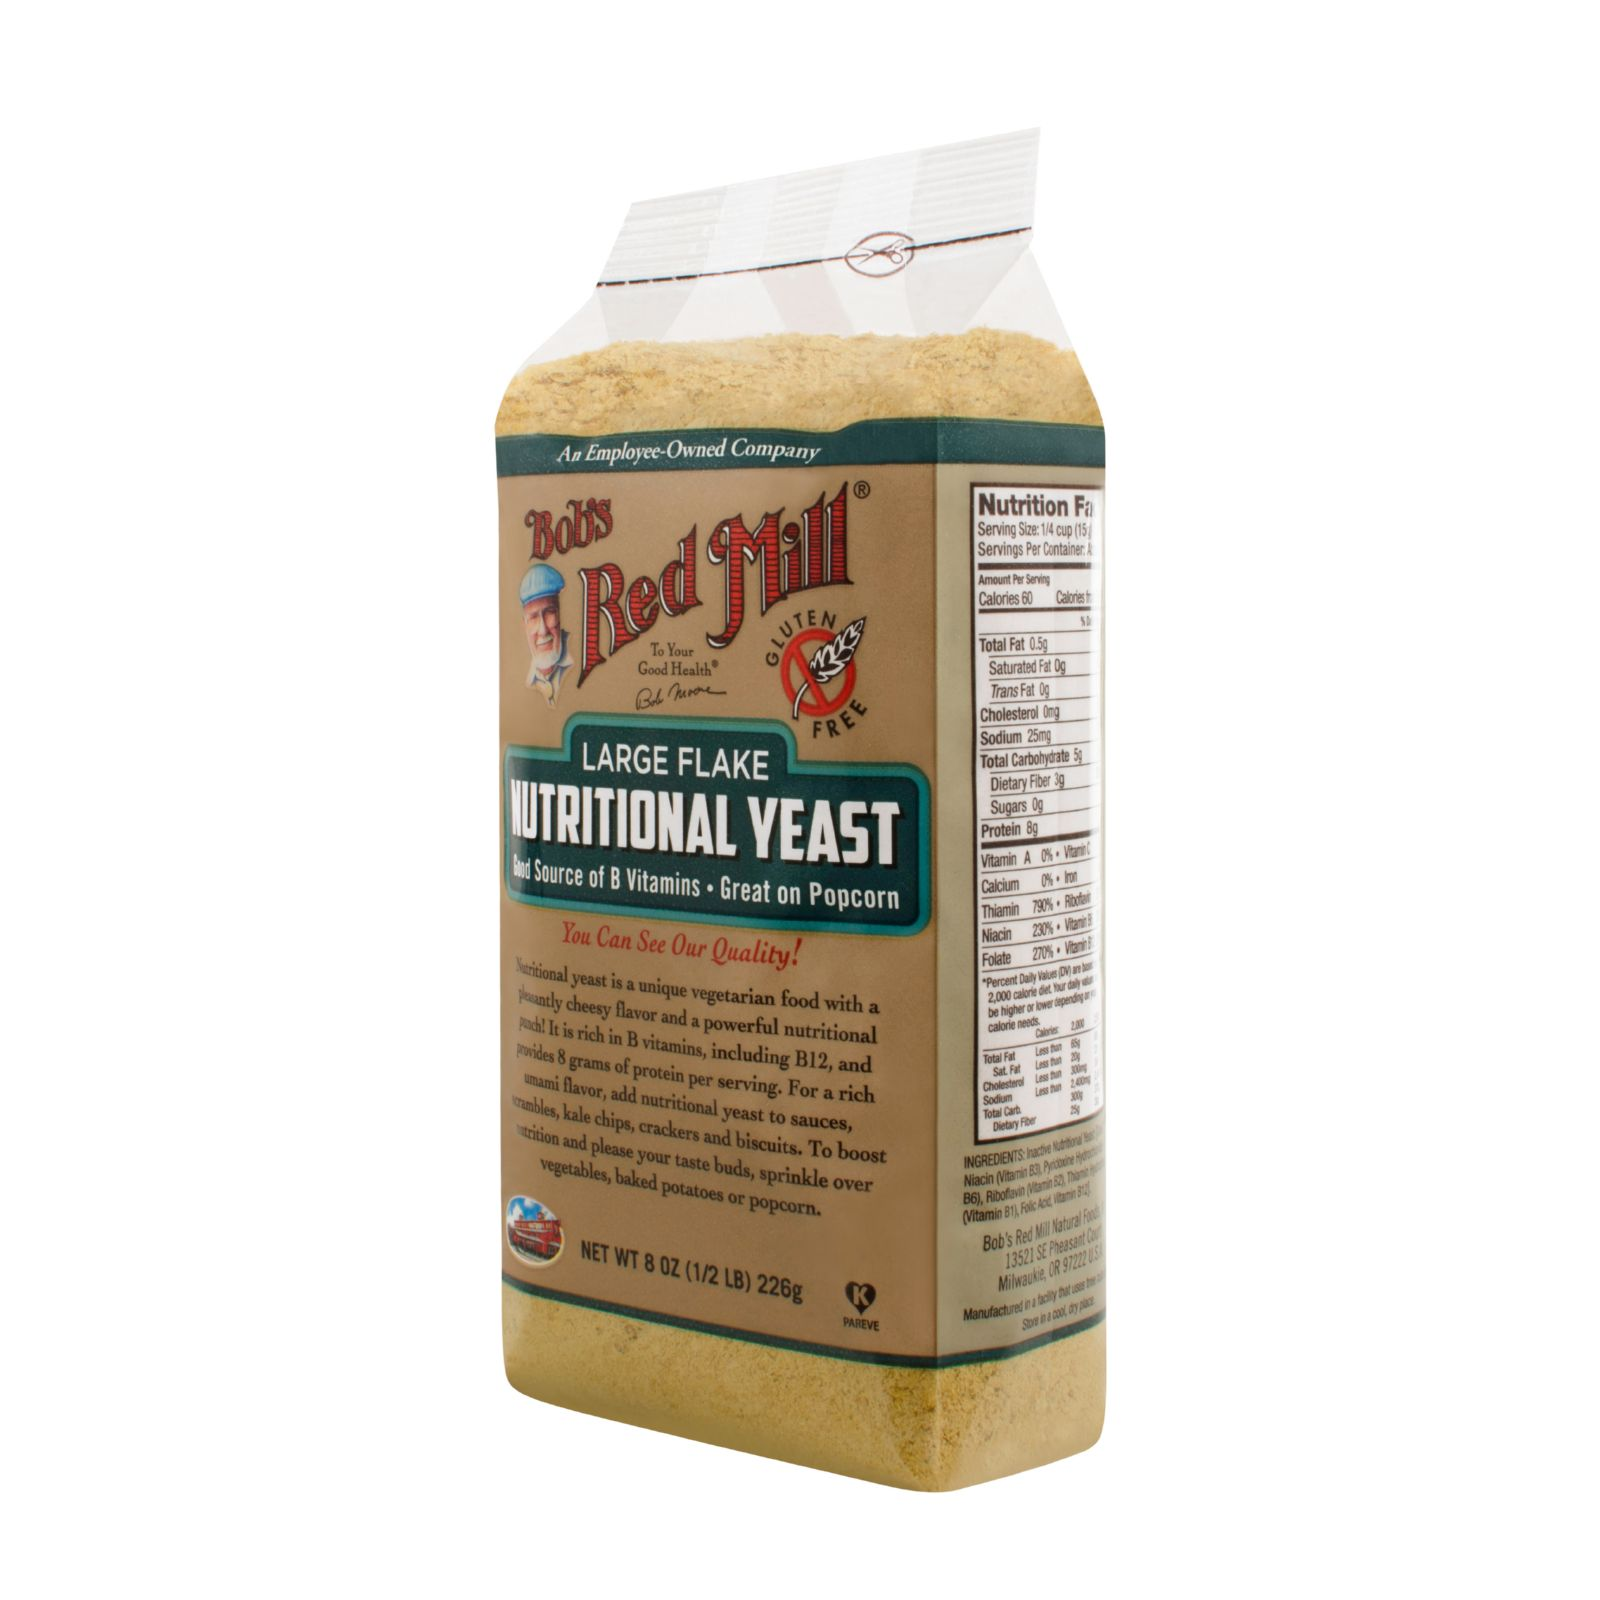 Bob's Red Mill Gluten Free Large Flake Nutritional Yeast 8 oz Case of 4 by